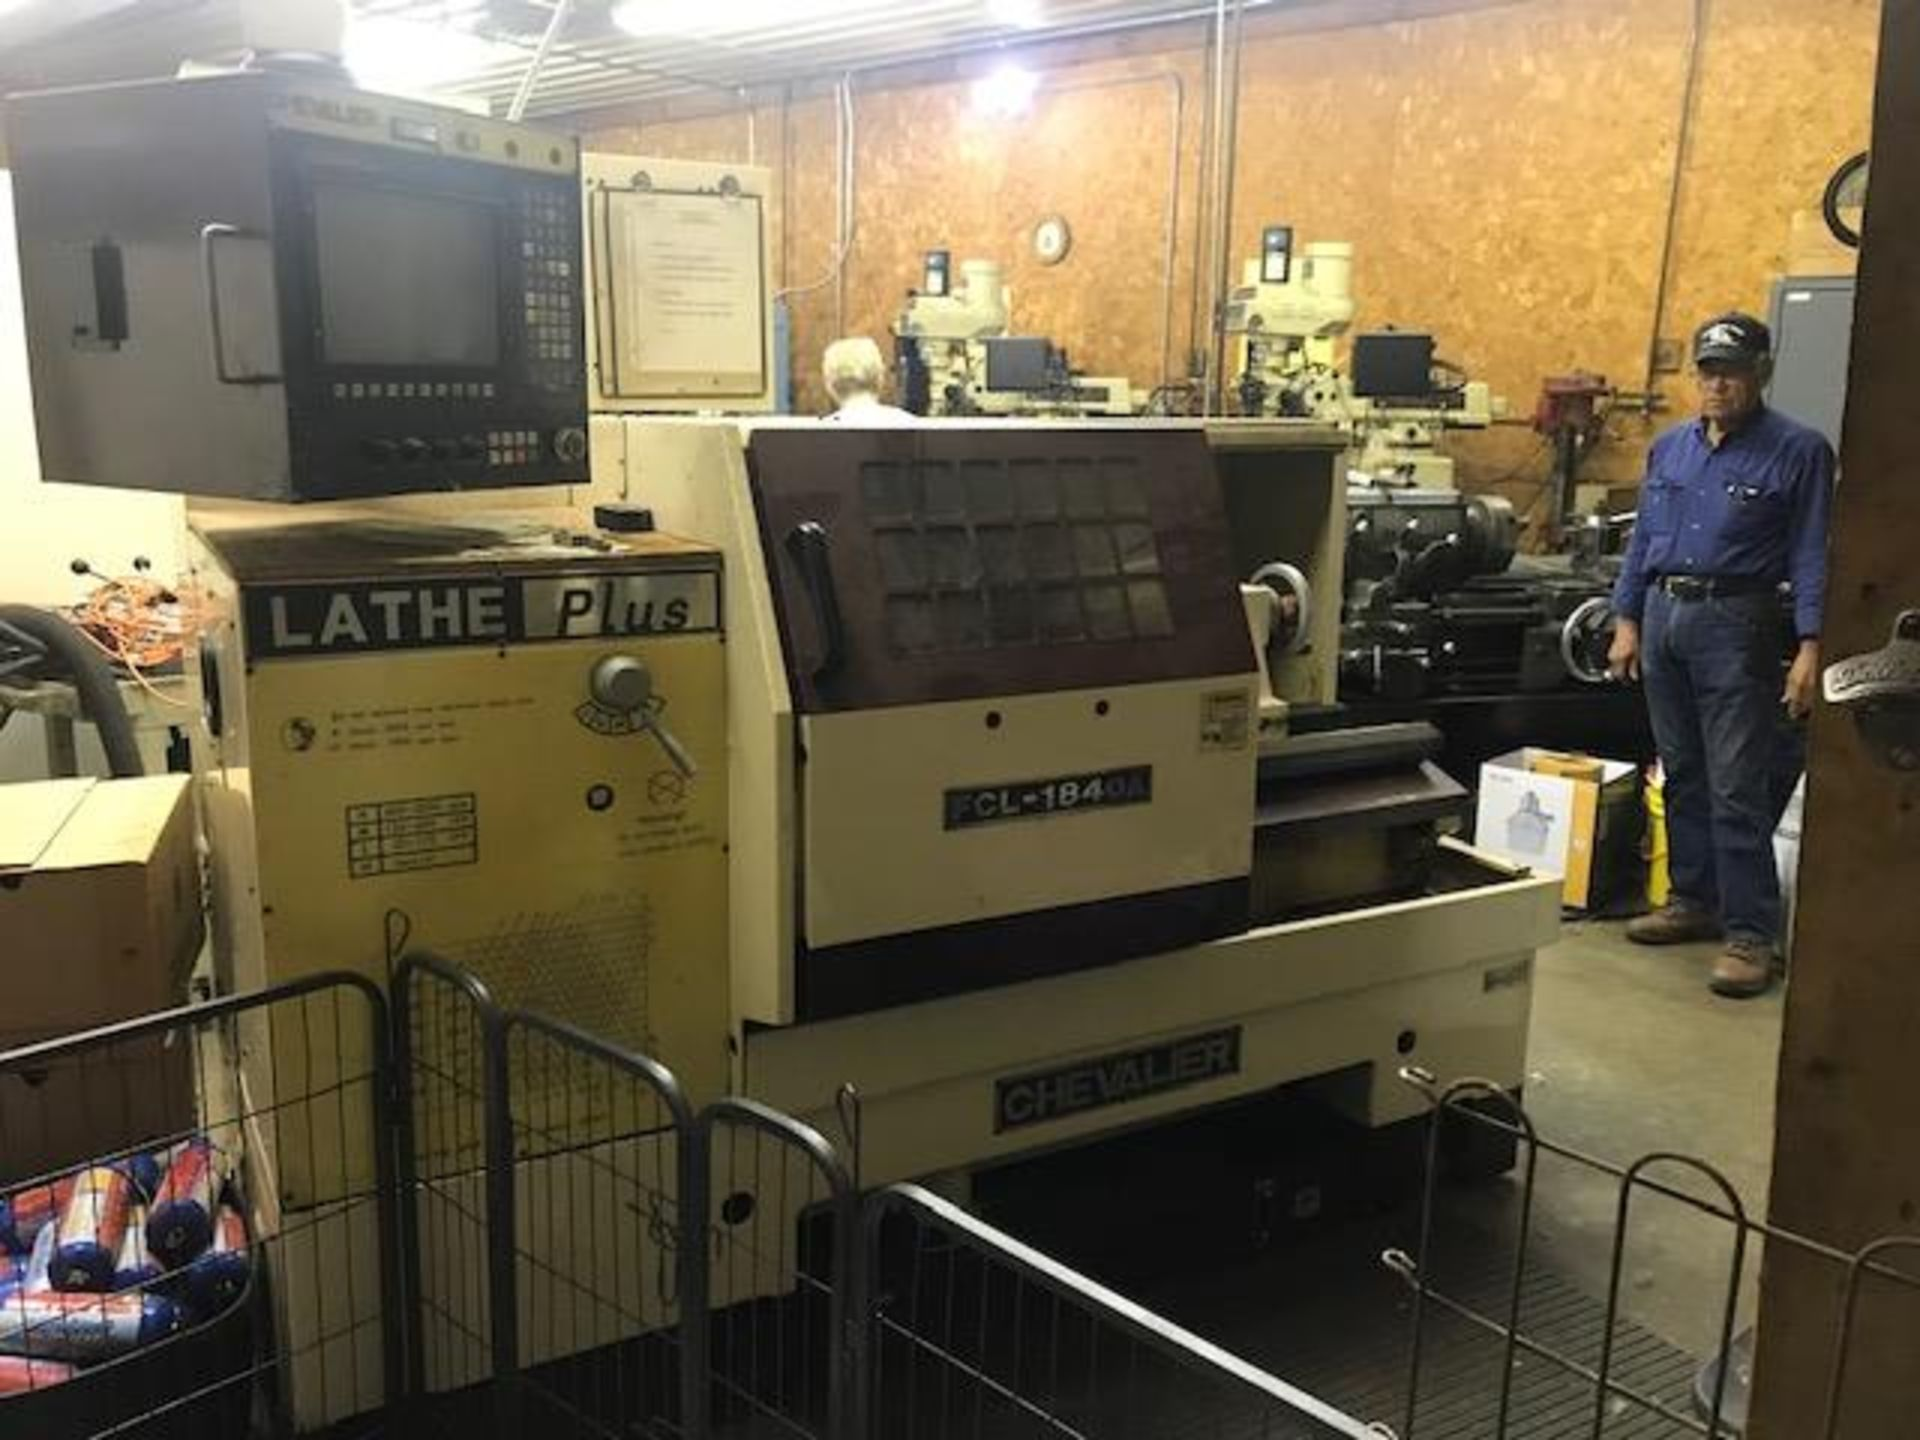 Lot 2 - CHEVALIER LATHE-PLUS, MODEL FCL - 1840A, ANILAM 1200T DRO, S/N X1864014 (LOCATION: SOUTH BEND,